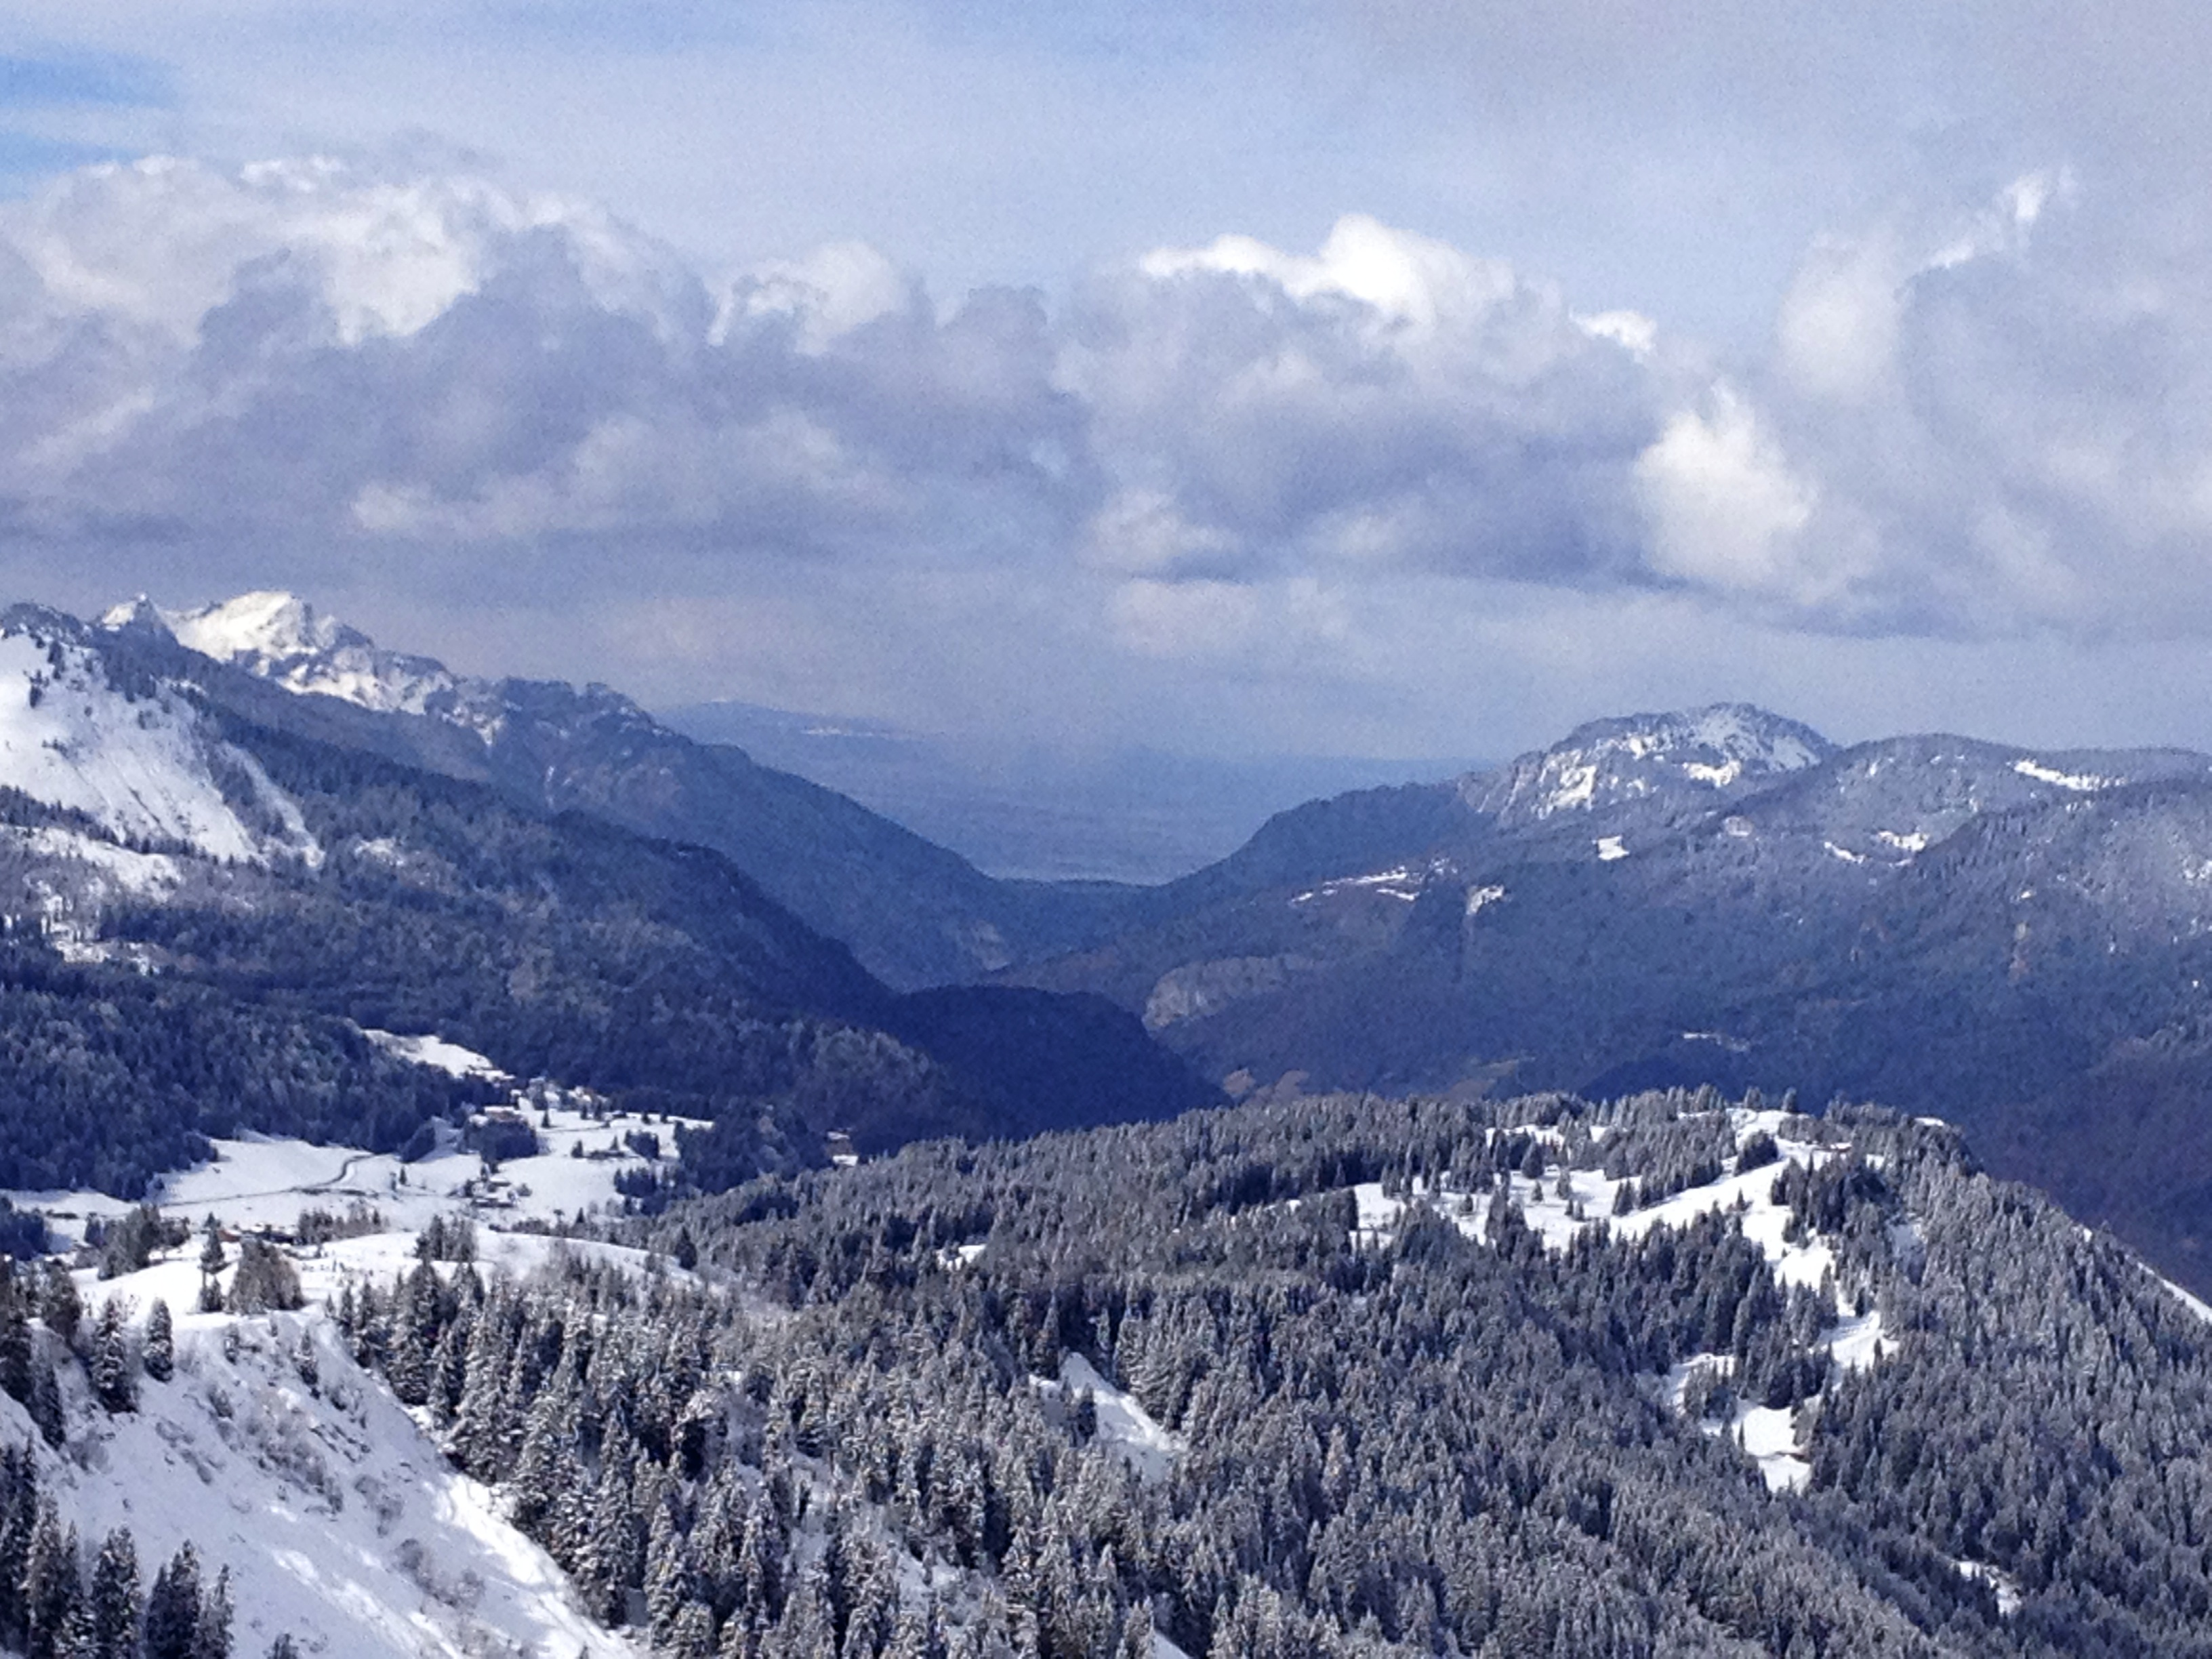 Now that's a view, Morzine